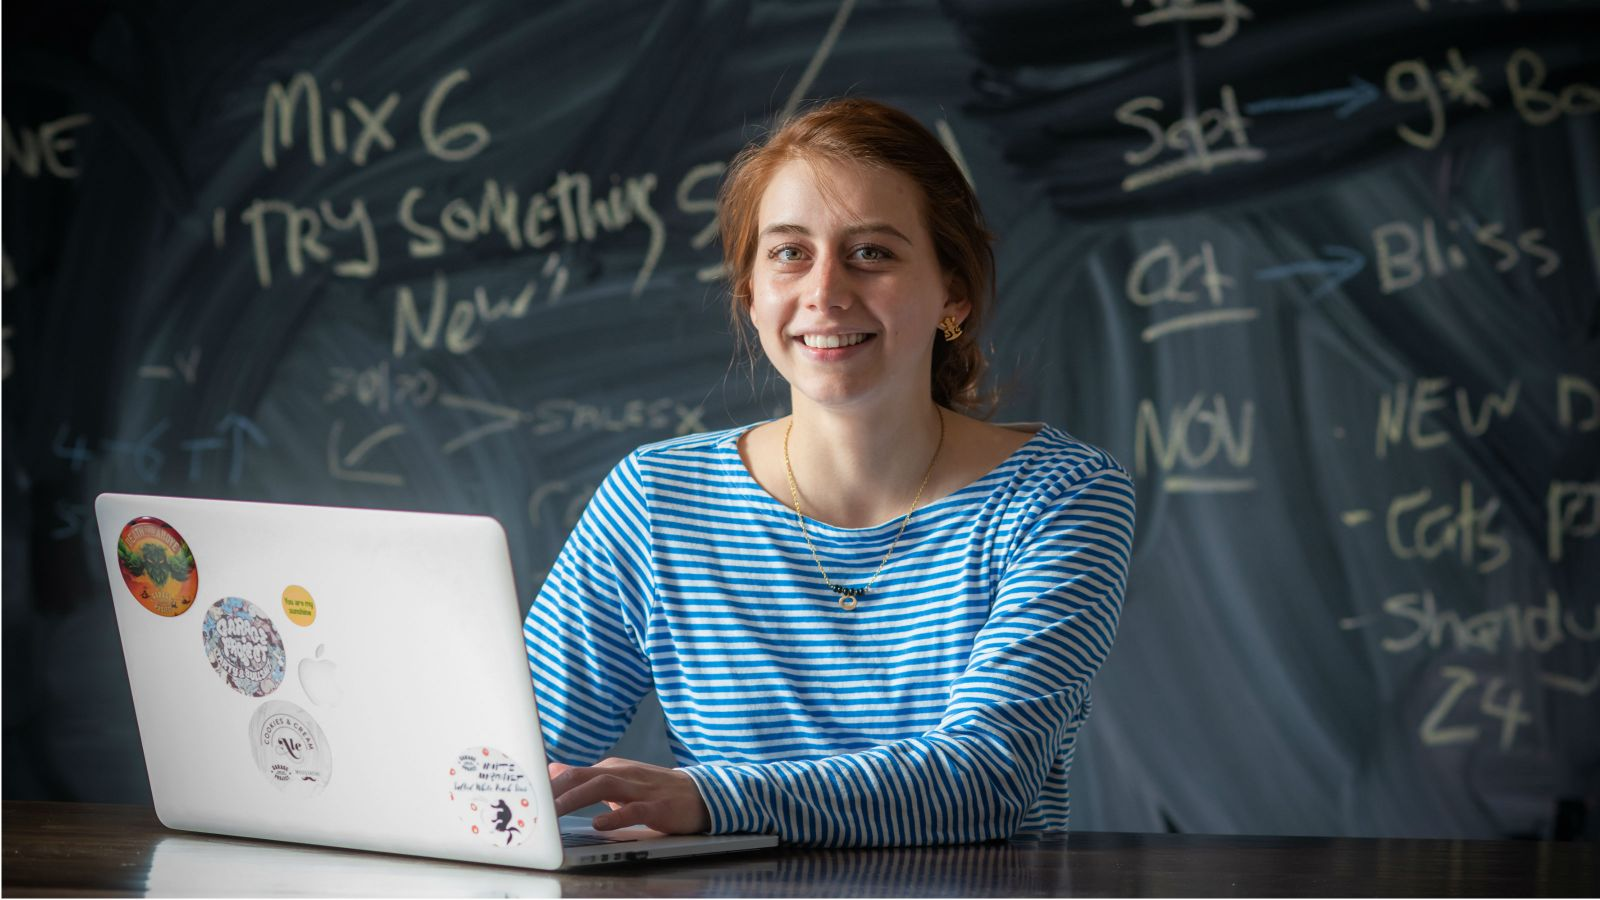 Clea Molano sits at a table with a laptop in front of her and a blackboard with white chalk writing behind her.